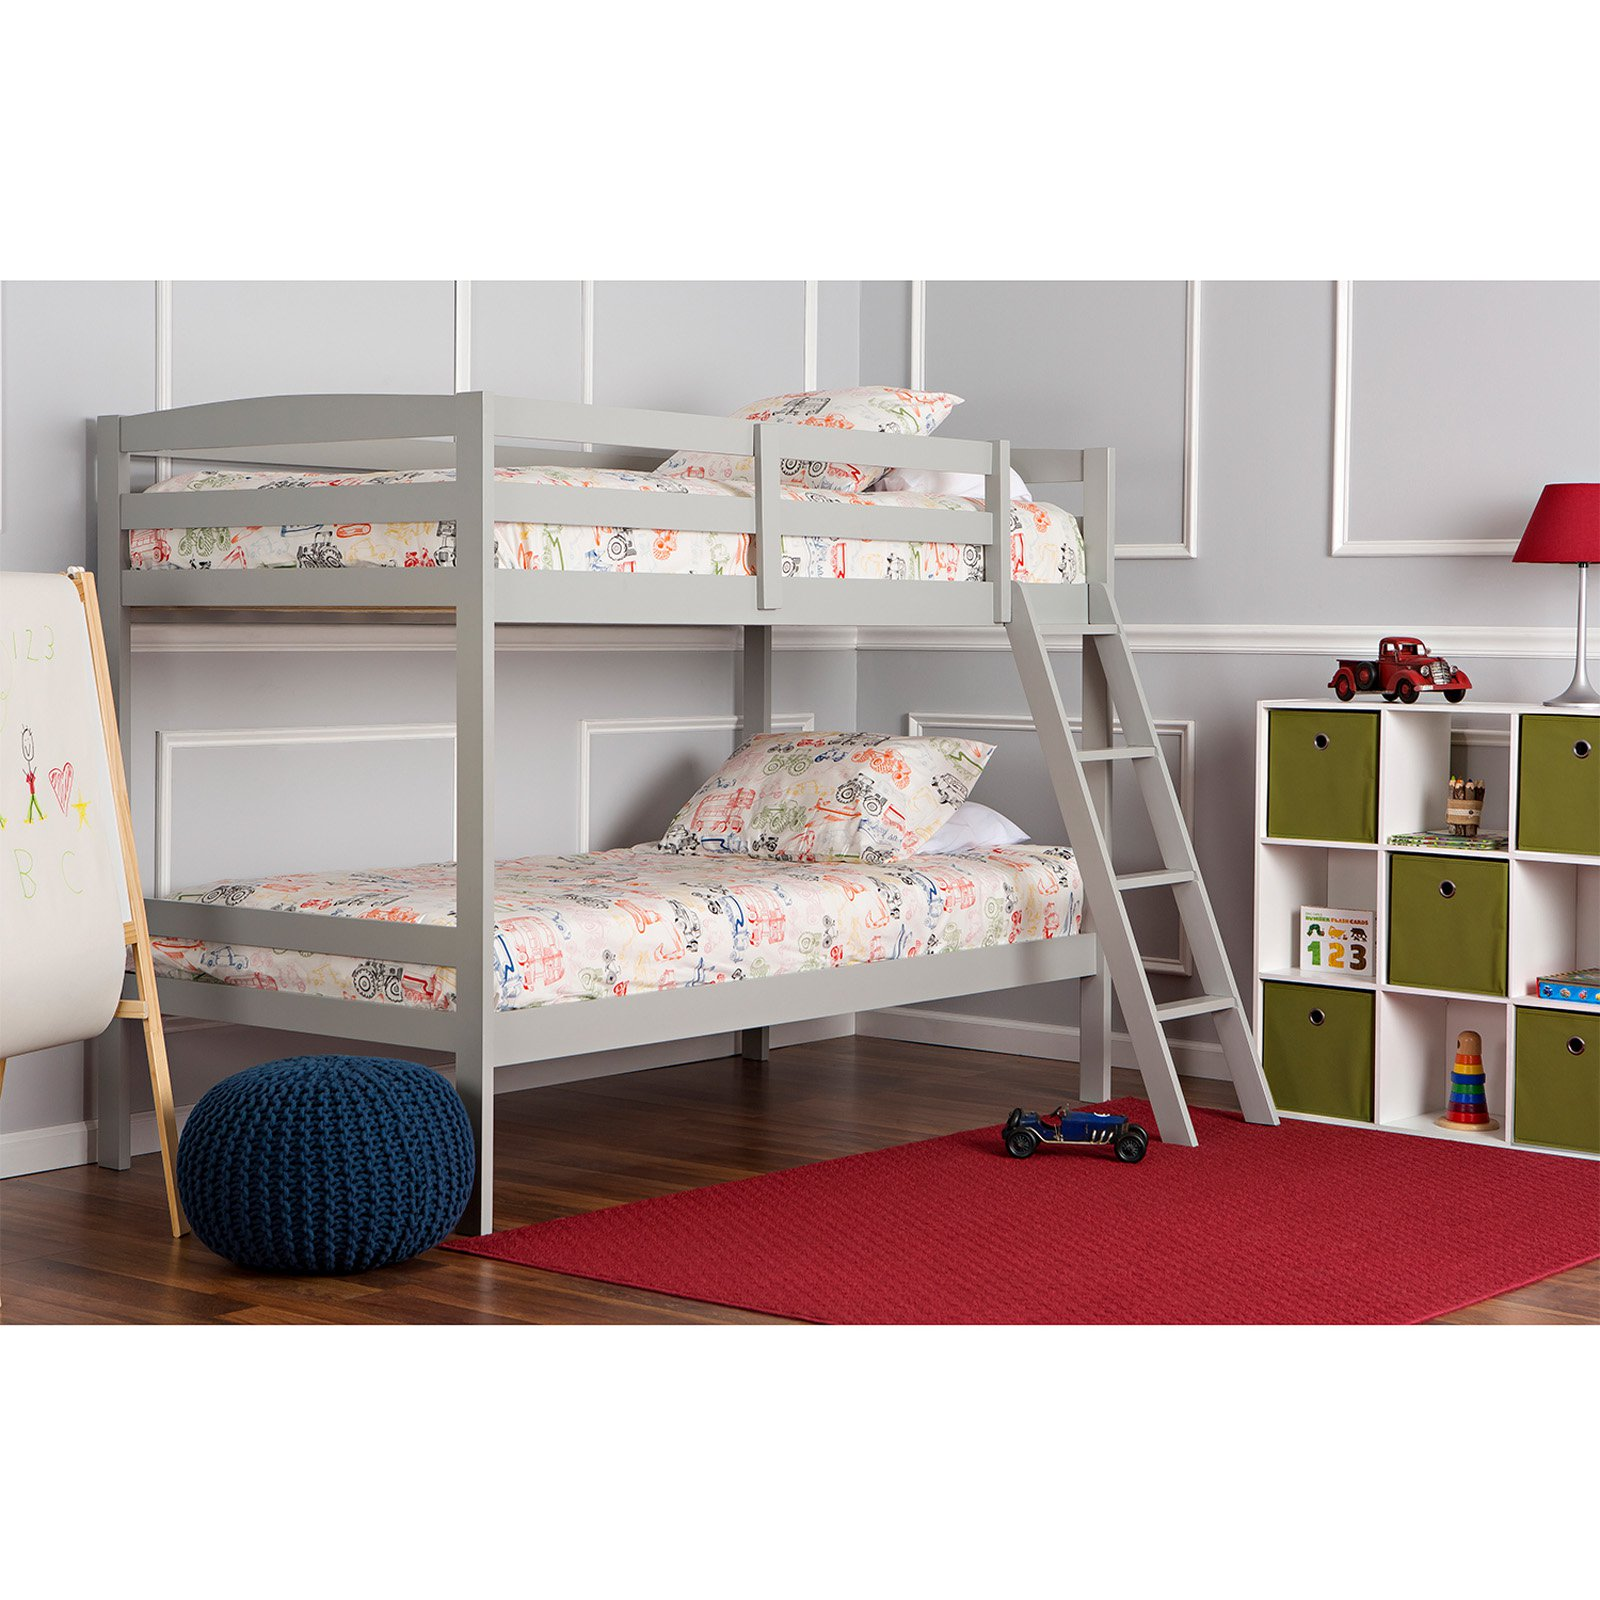 Dream On Me Taylor Twin Over Twin Wood Bunk Bed, Gray (Box 1 of 2) by Dream On Me